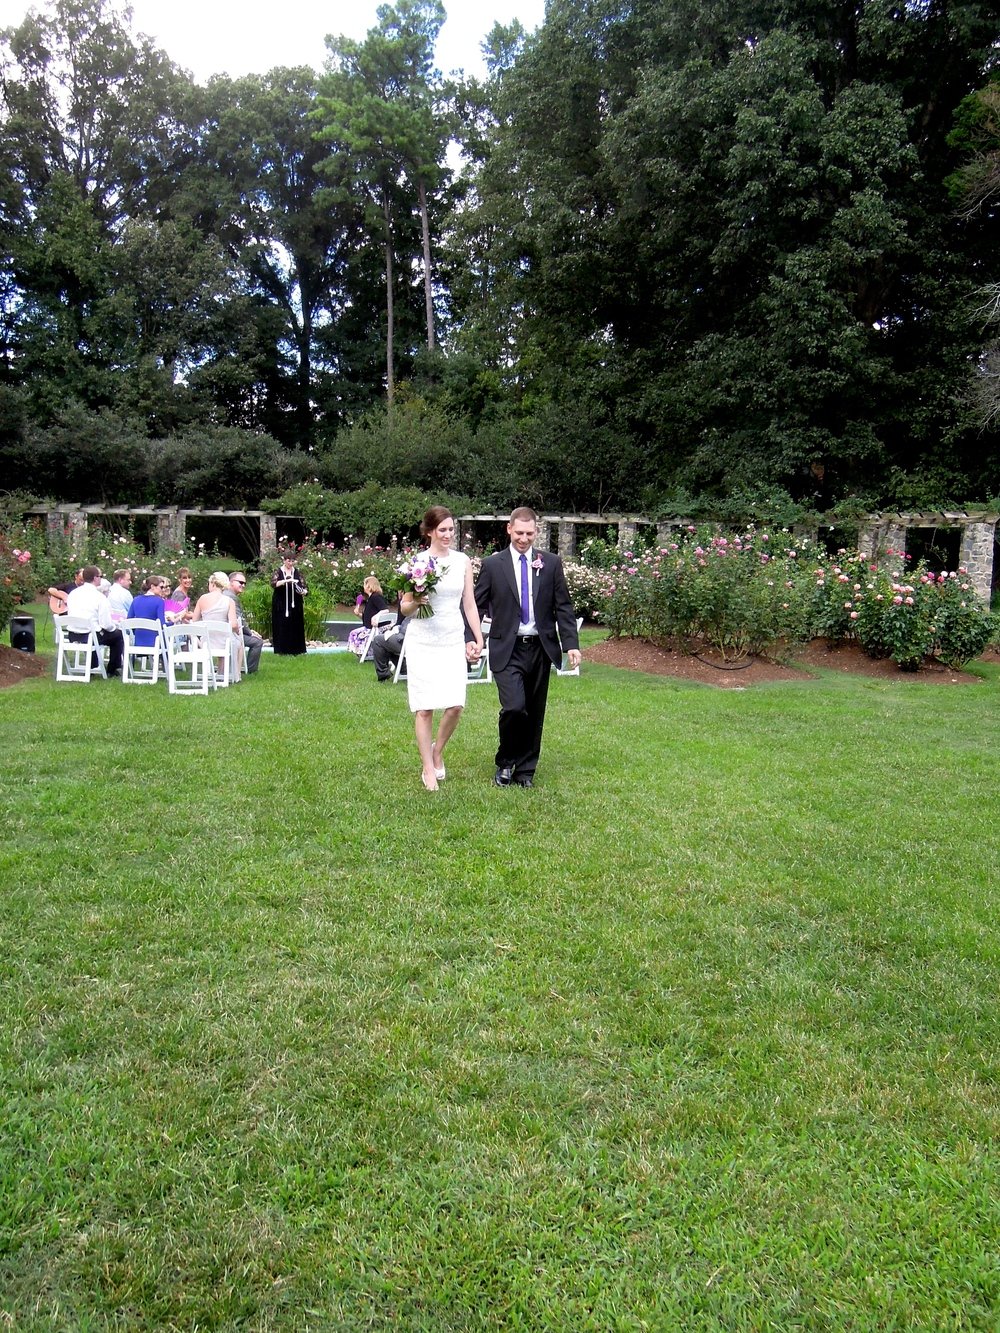 Wedding at Raleigh Rose Garden in Raleigh NC